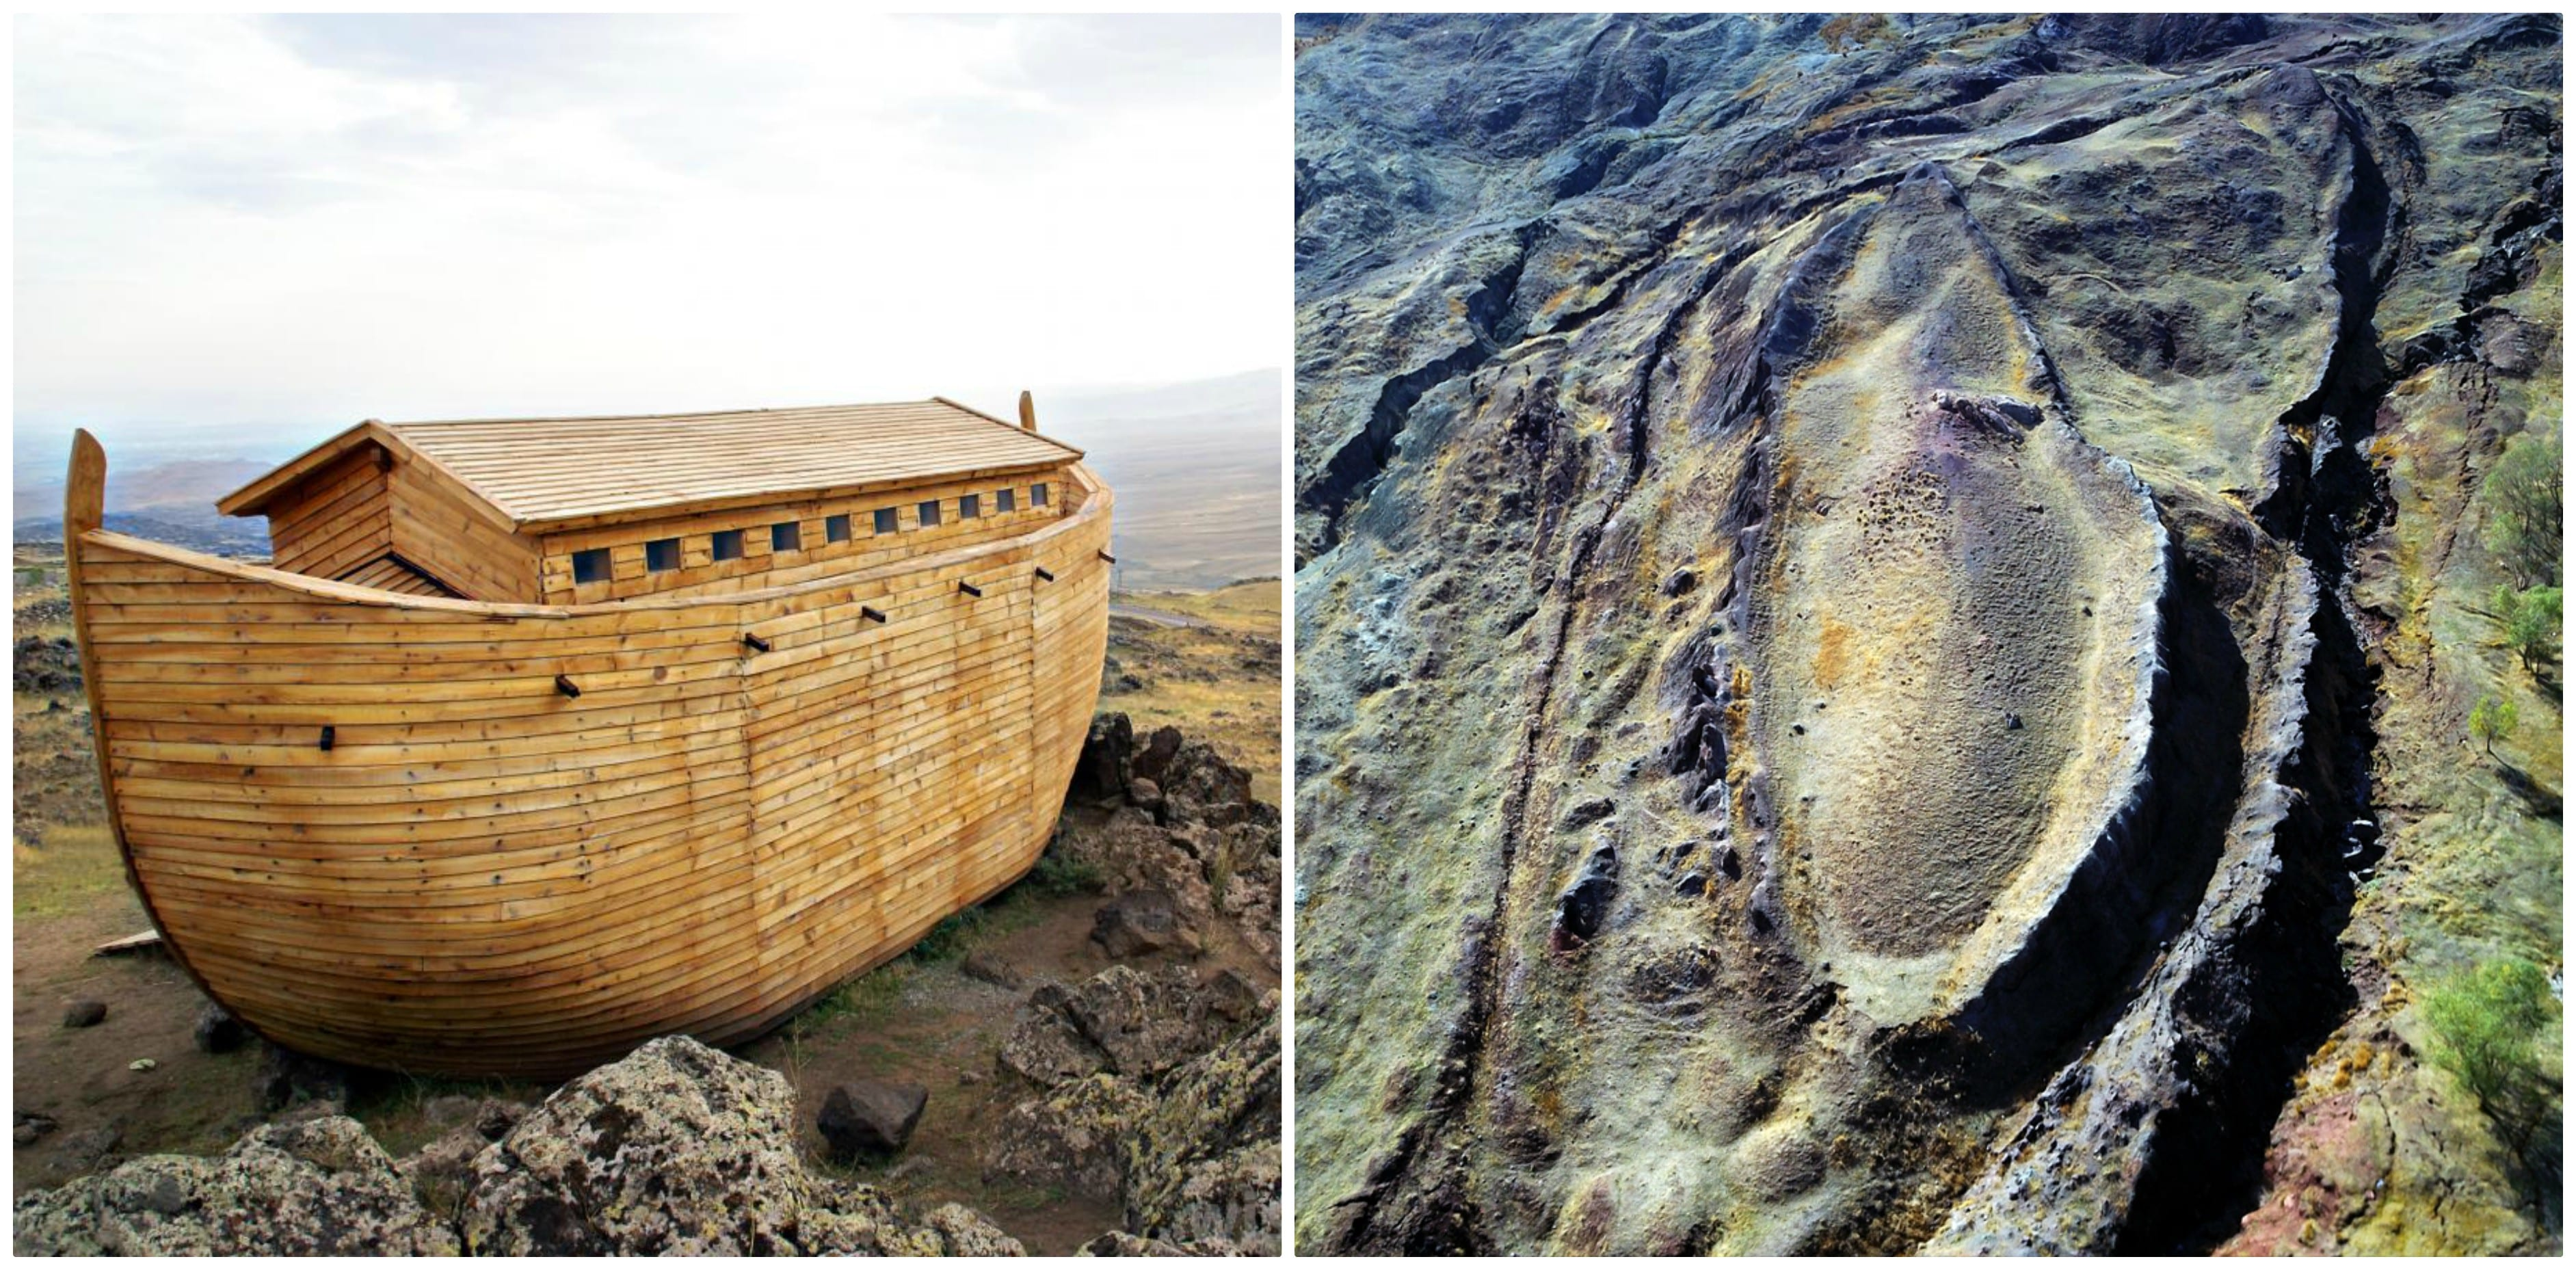 Archaeologists Discover Remains Of 2,000-Year-Old Biblical Ark